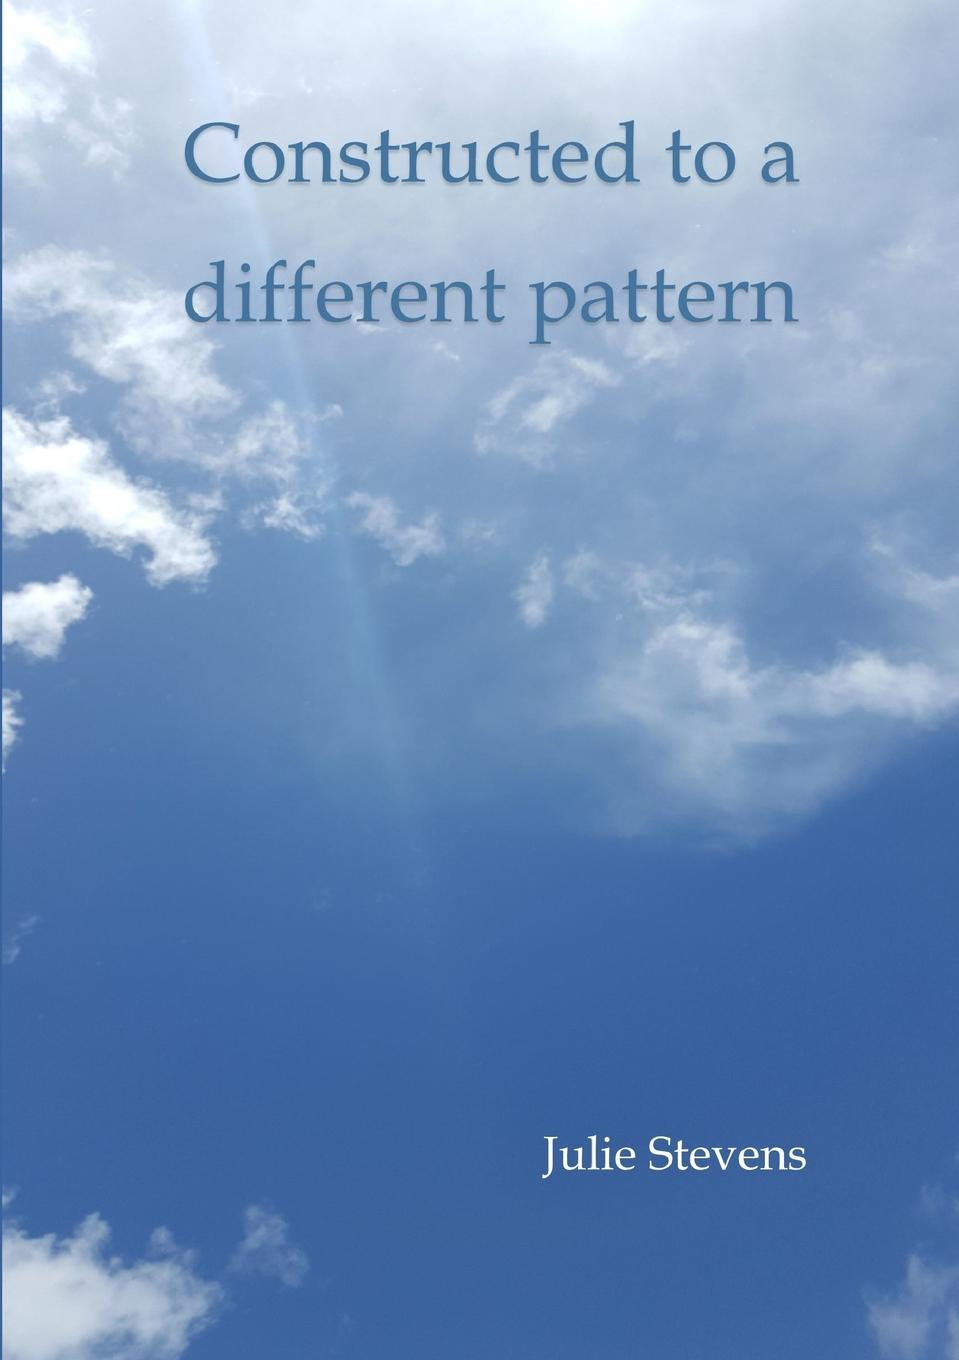 Julie Stevens Constructed to a different pattern